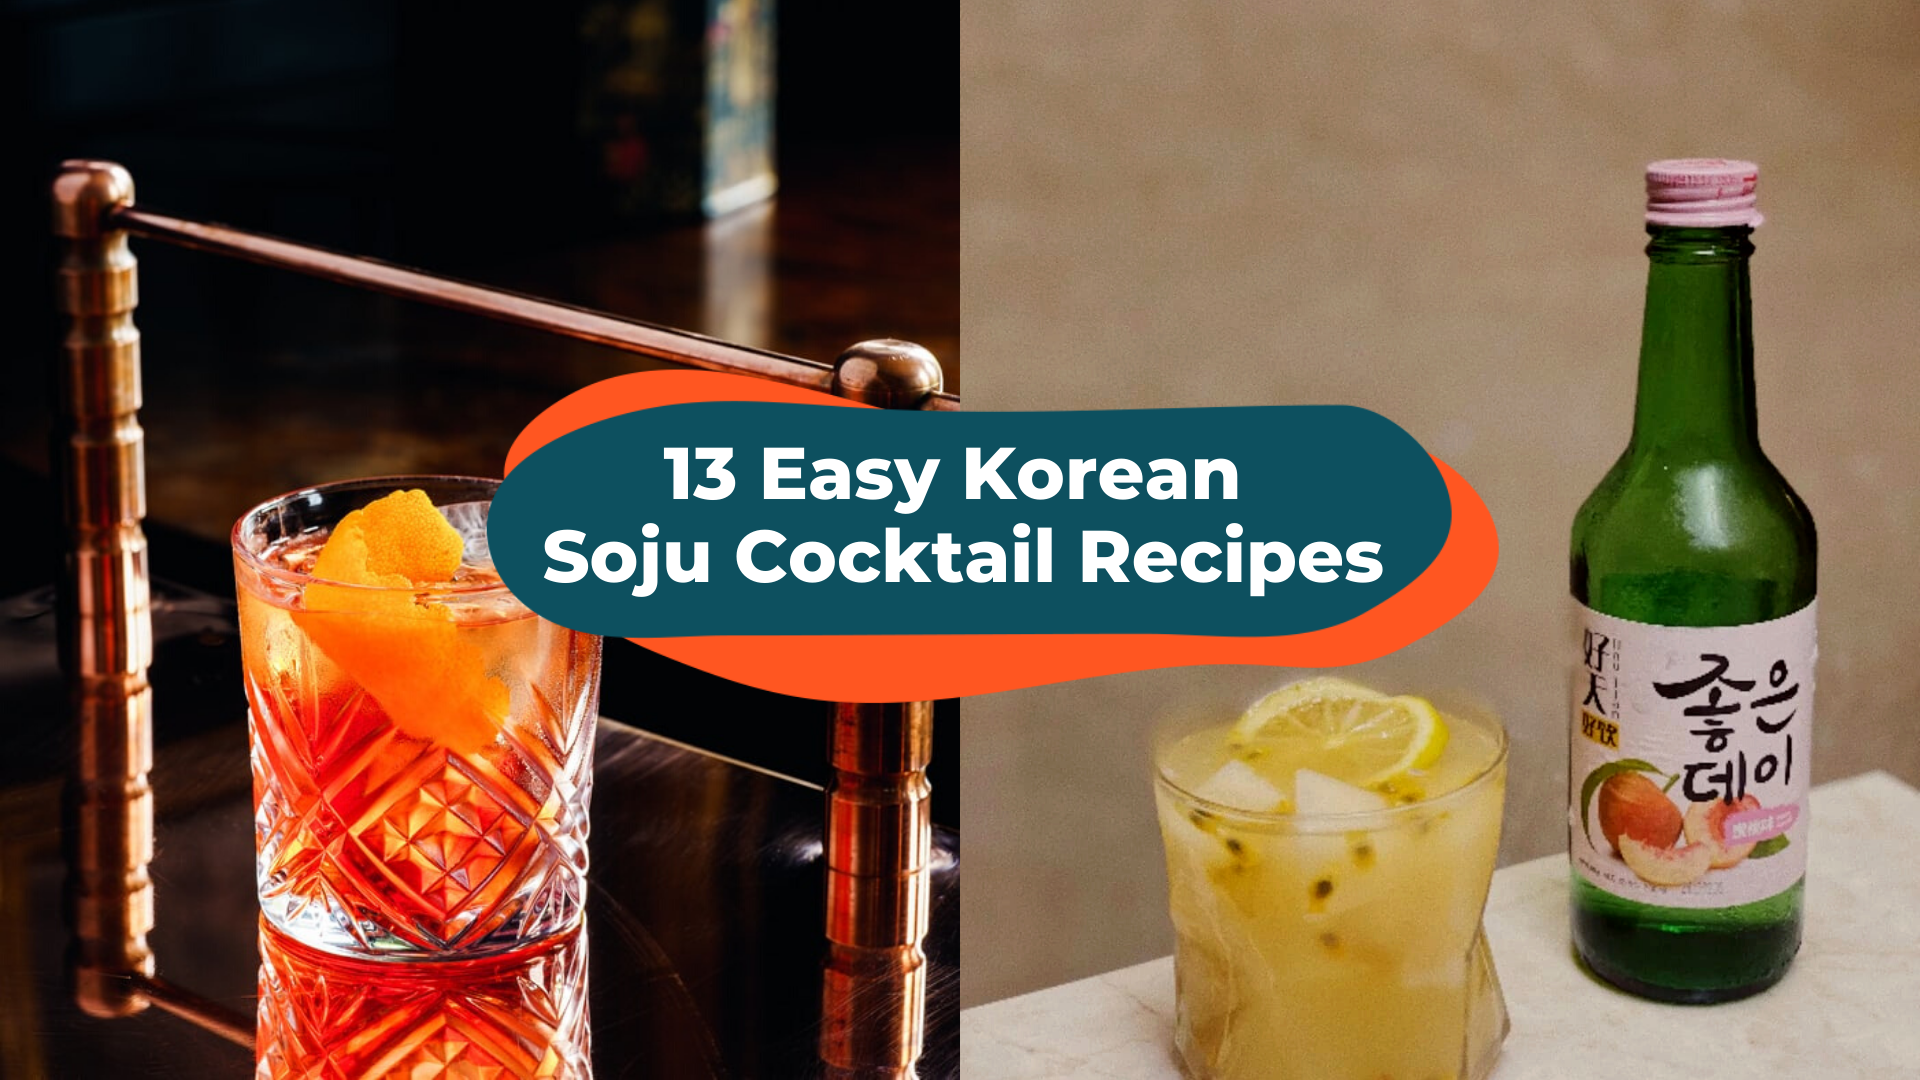 [Updated] 13 Easy Korean Soju Mixes For Happy Hour At Home